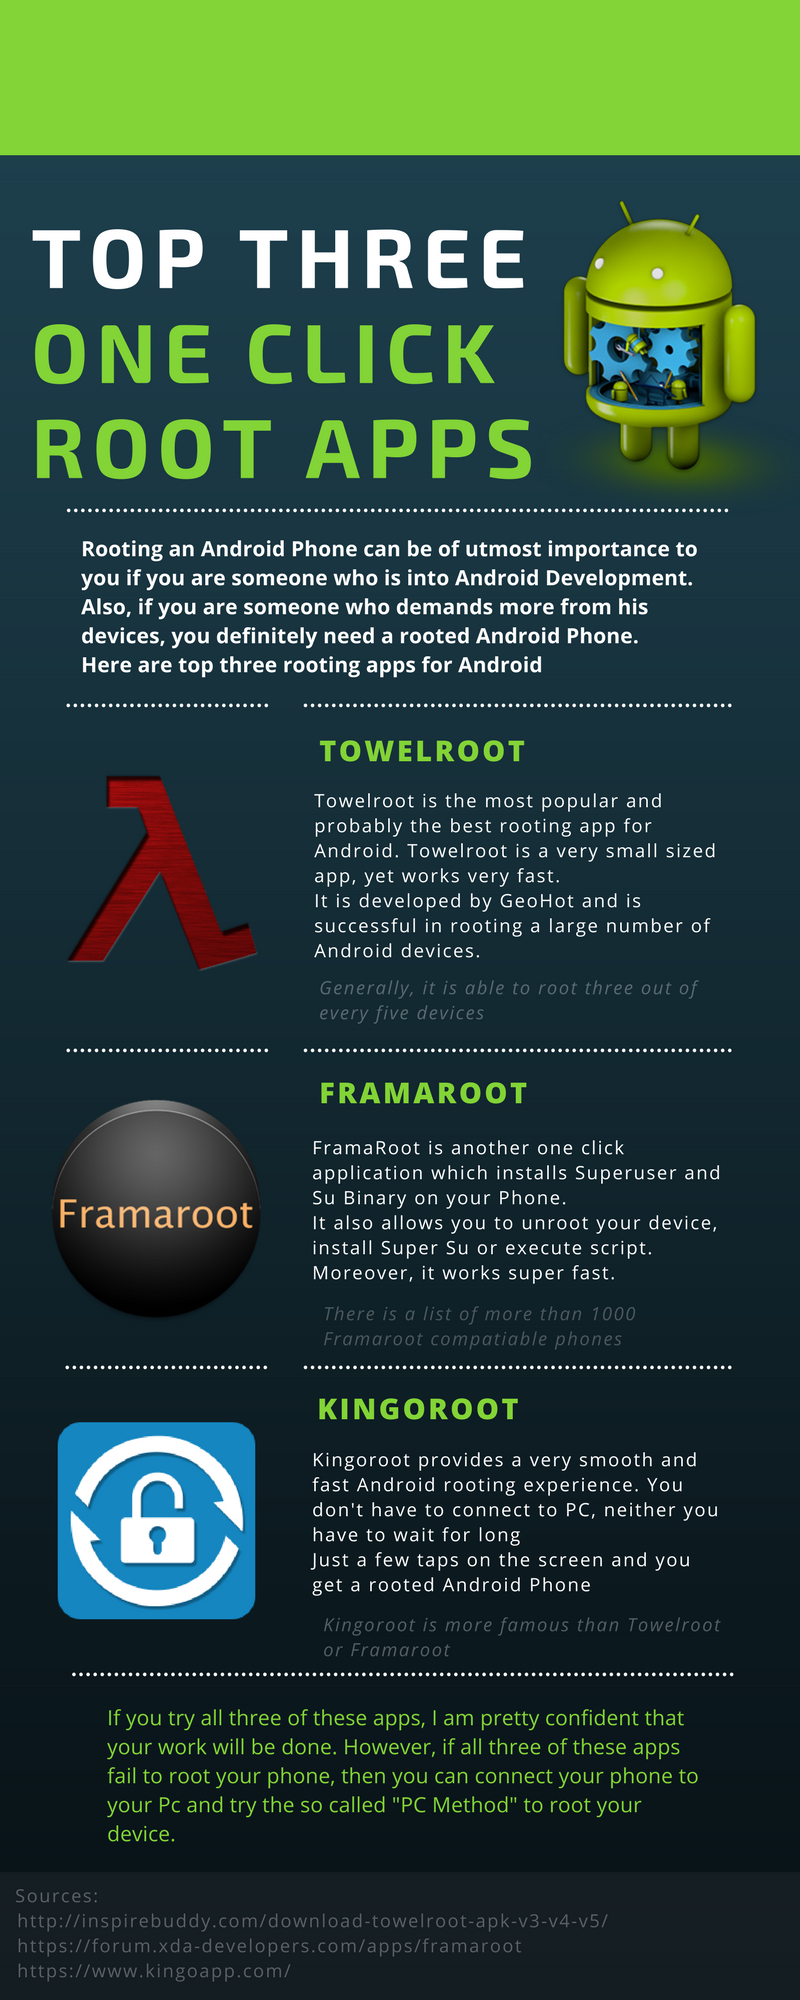 Top Three One Click Rooting Apps for Android